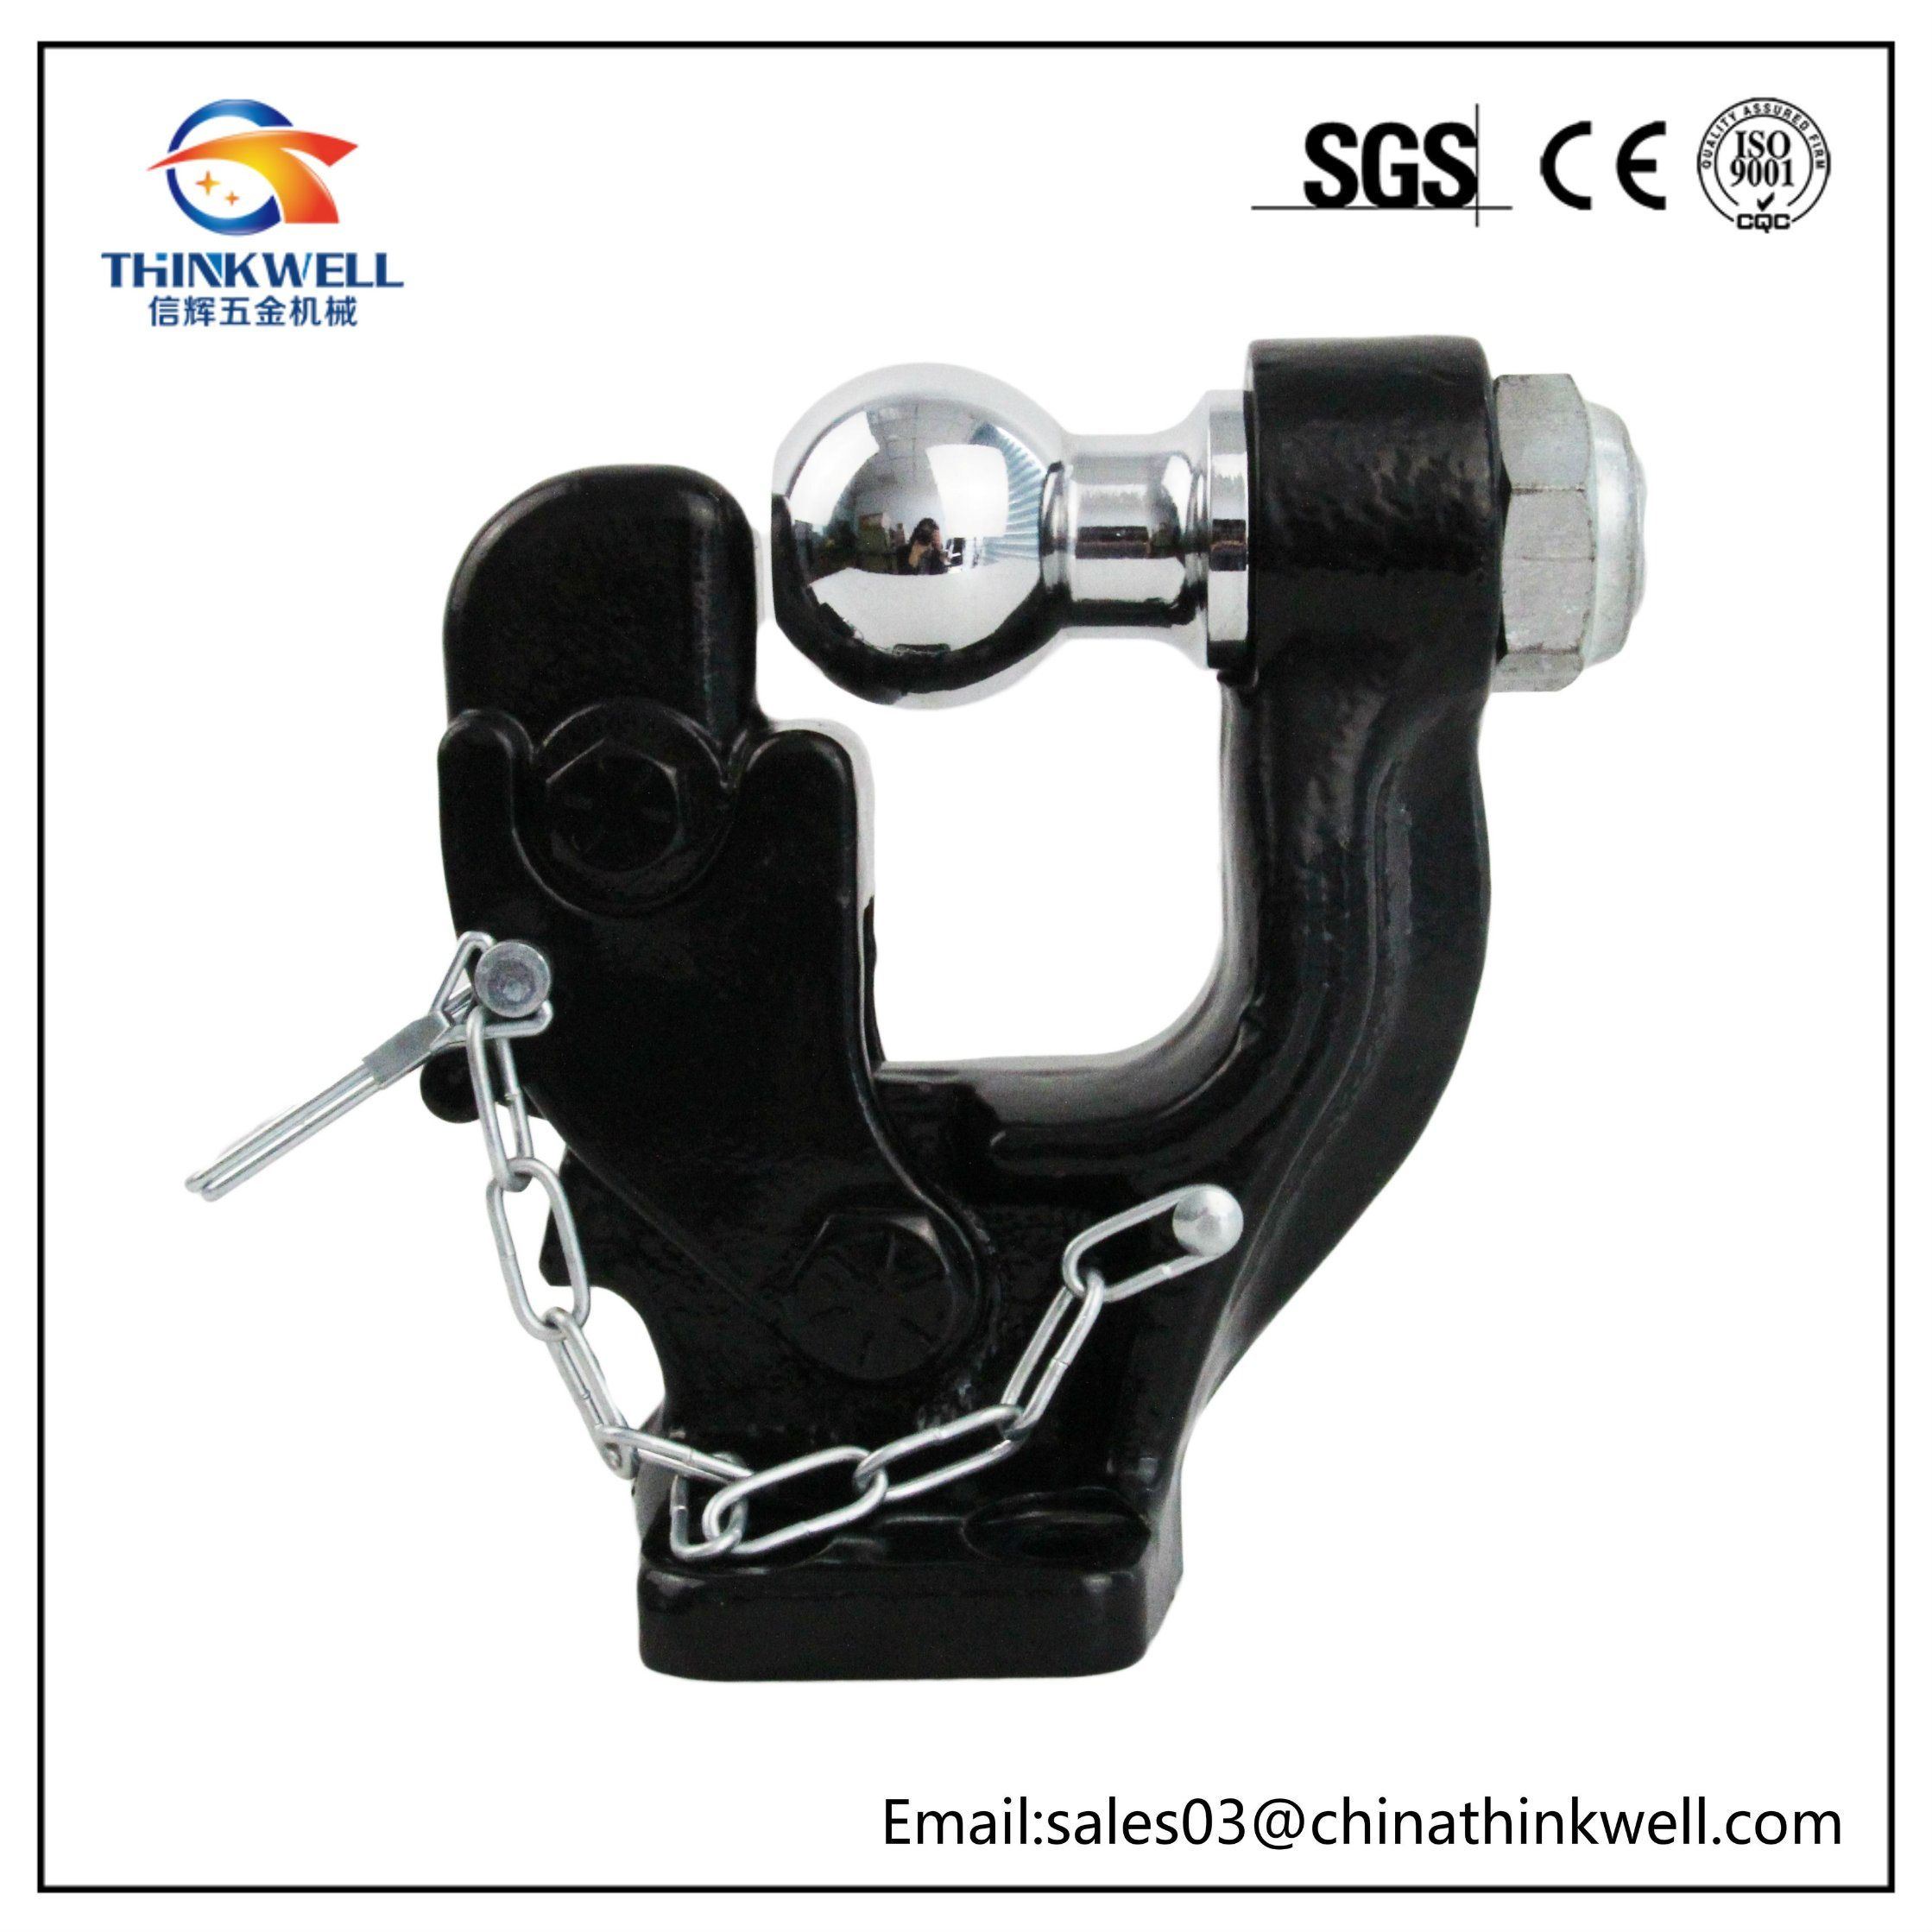 8 Ton Heavy Duty Pintle Hook with Ball Trailer Ball and Pintle Hook